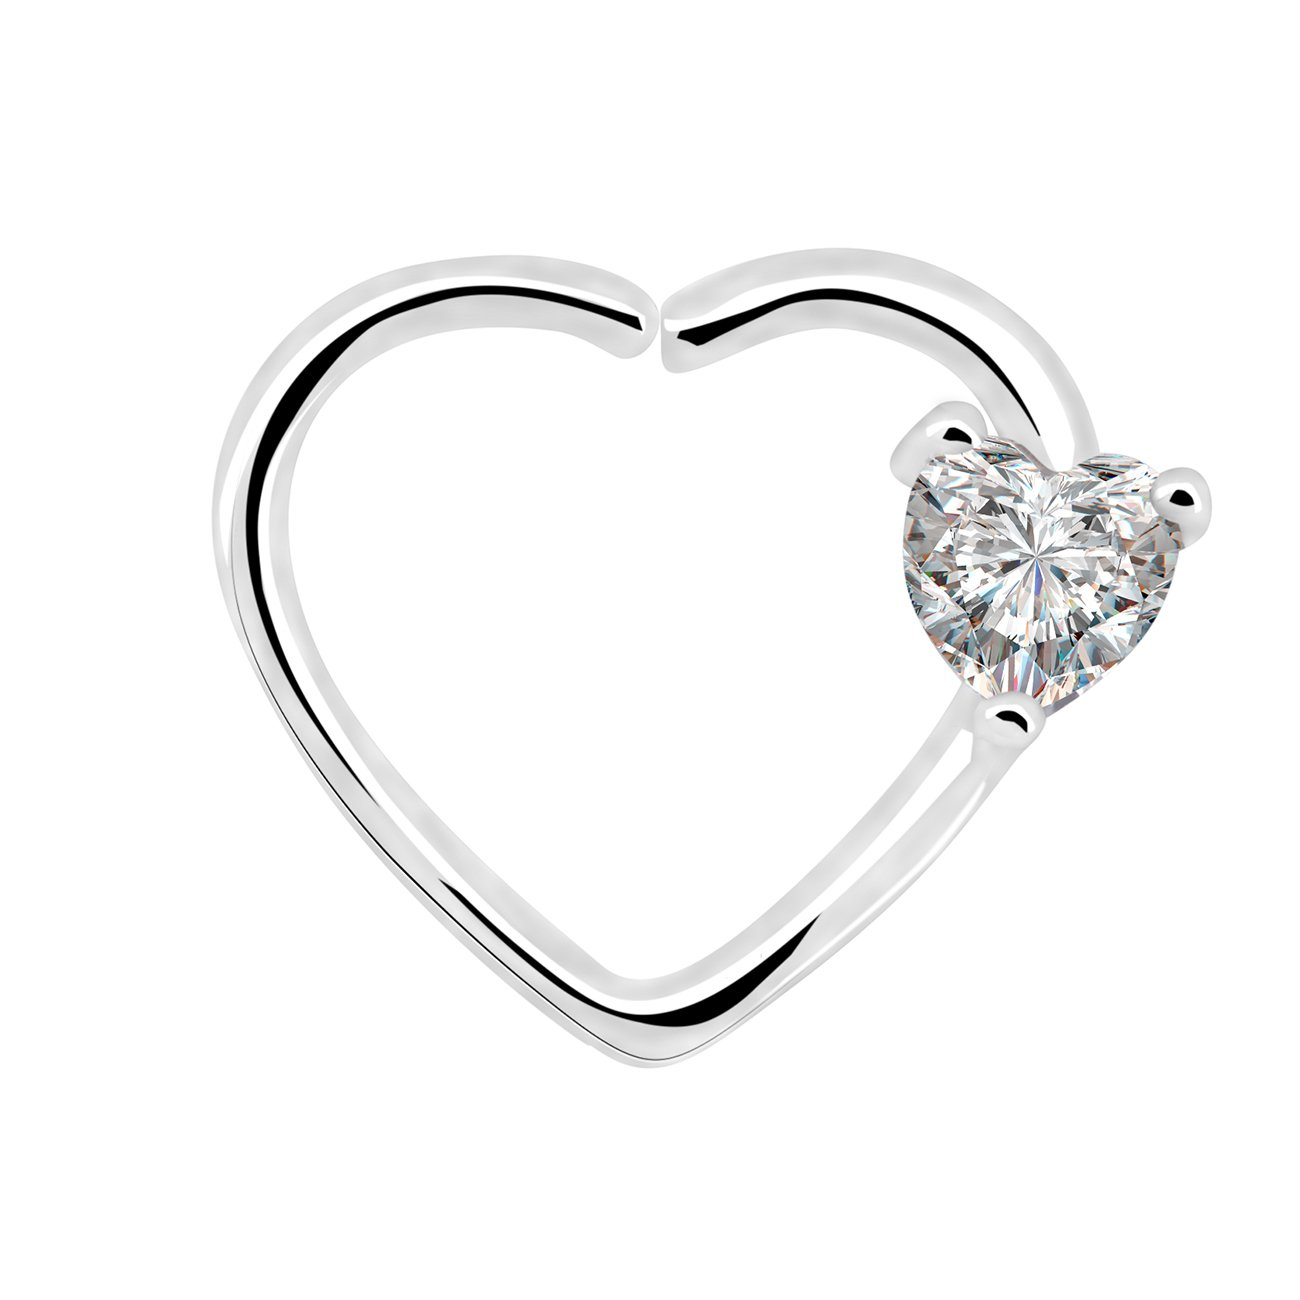 OUFER Body Piercing Jewelry 16 Gauge Clear Heart CZ Left Closure Daith Cartilage Earring Heart Tragus Earrings Piercing (white clear)